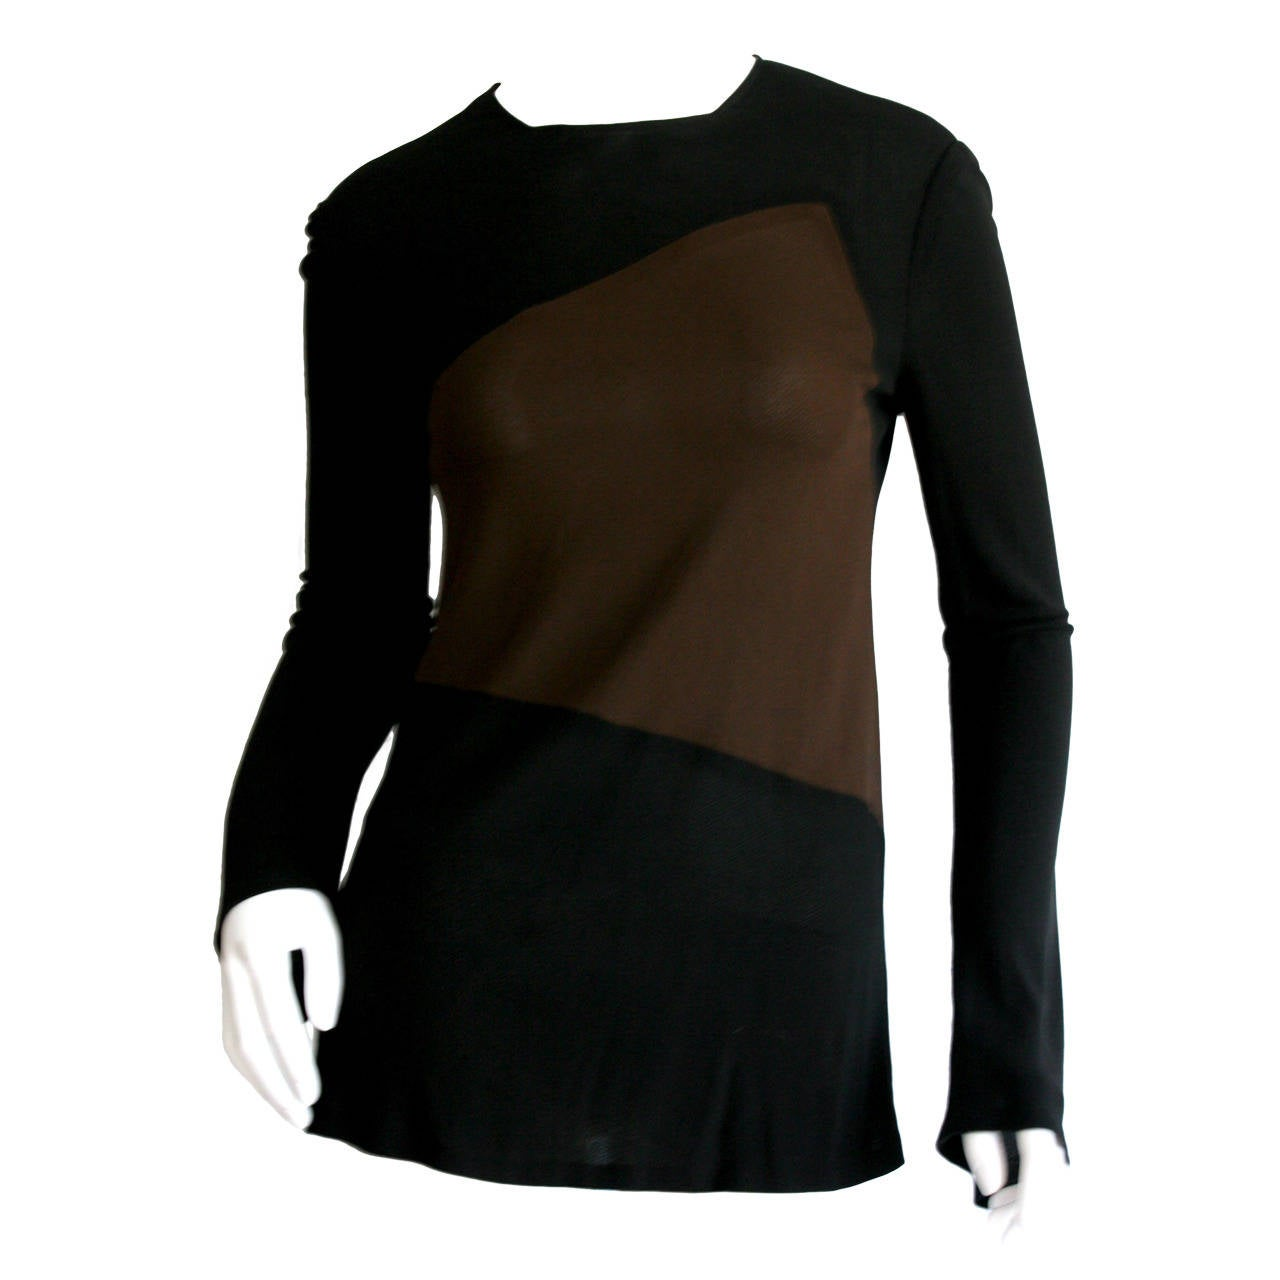 1990s Vintage Calvin Klein Collection Black and Brown Color Block Silk Top